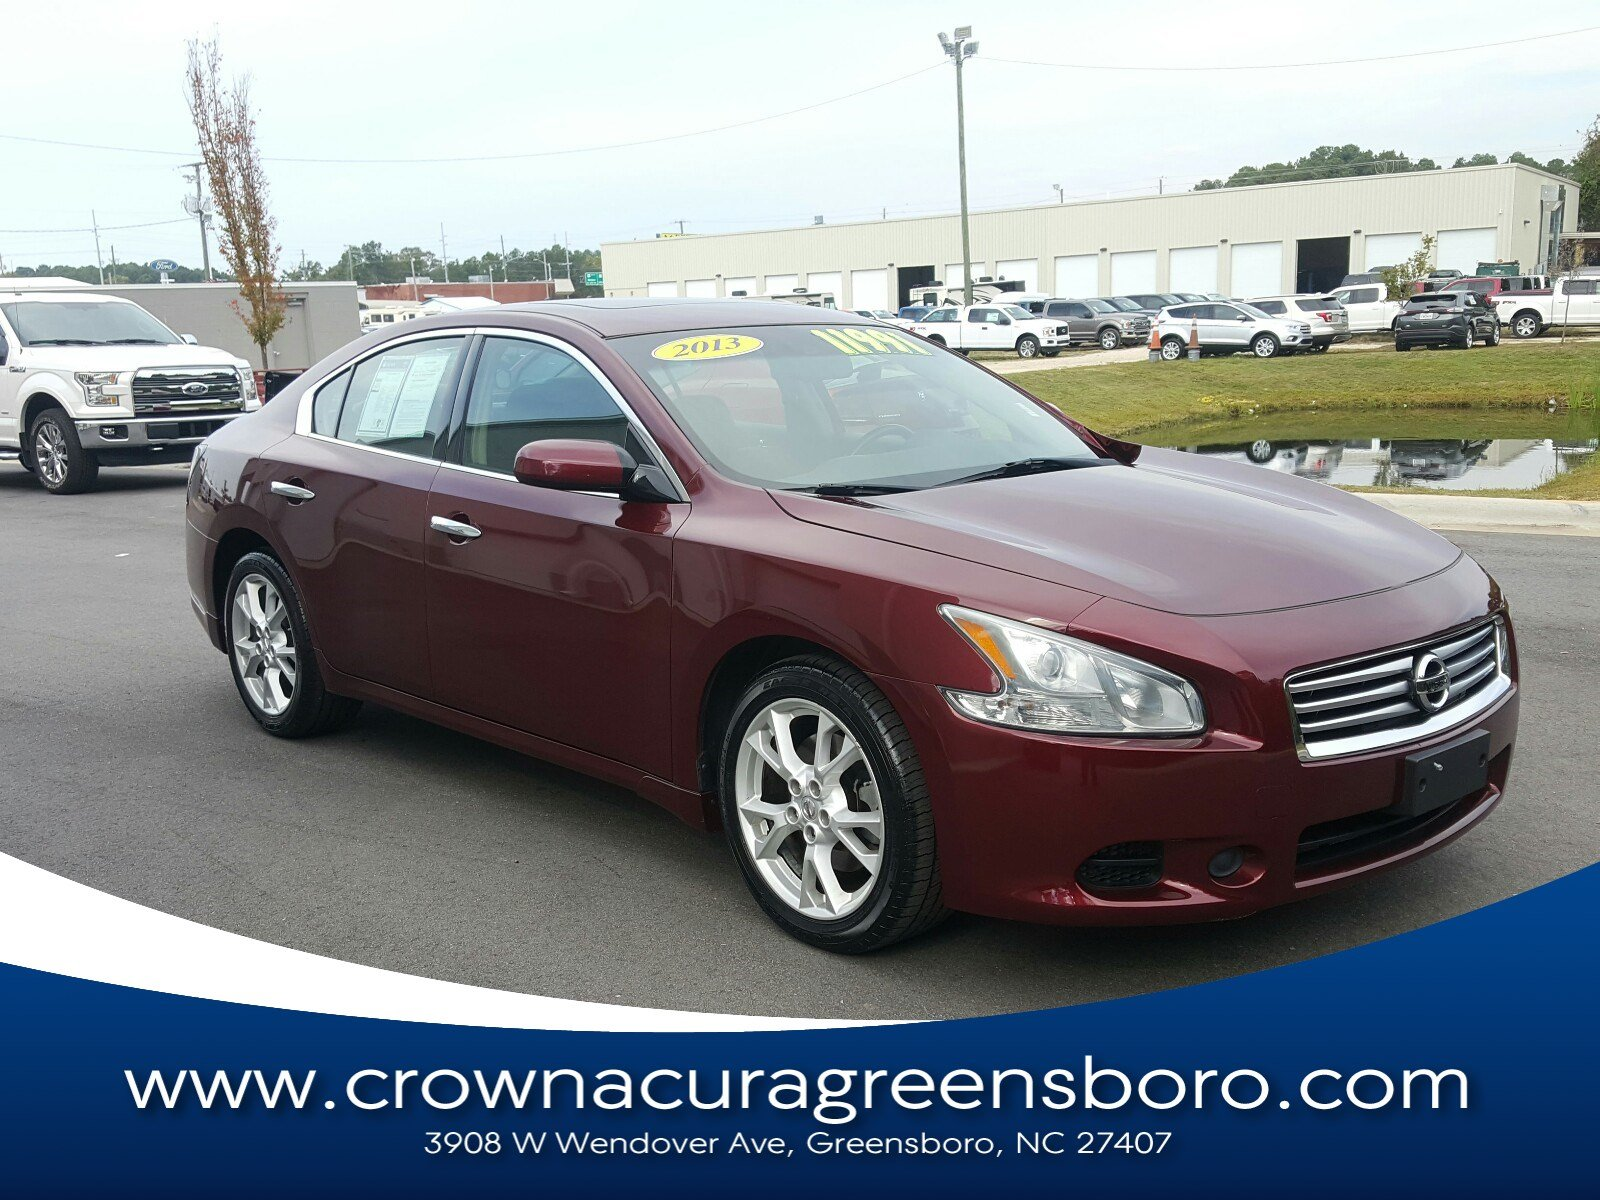 Pre-Owned 2013 Nissan Maxima 3.5 S in Greensboro NC